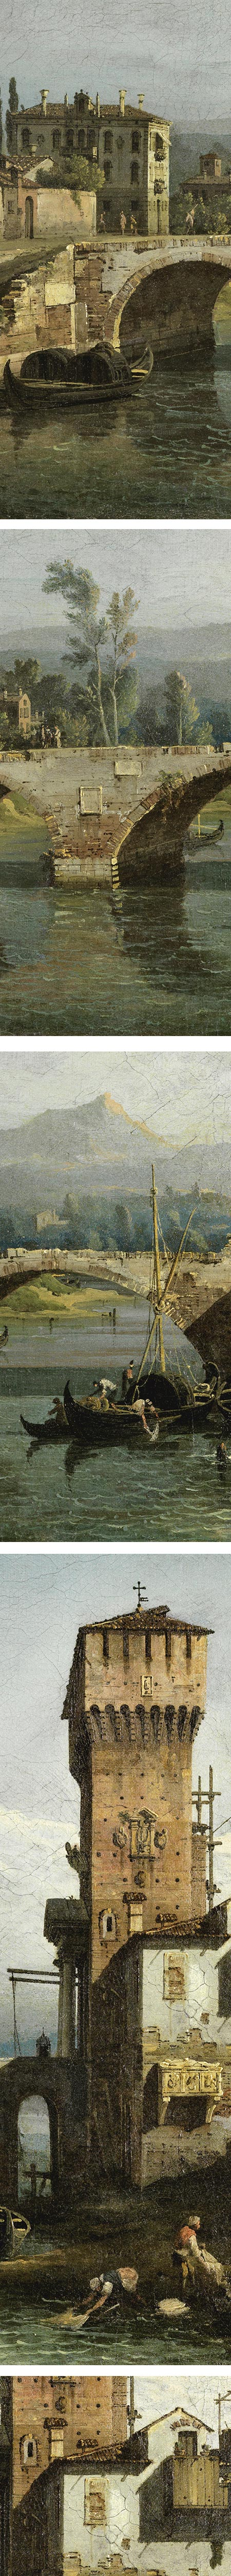 Bernardo Bellotto, Capriccio with a River and Bridge, details